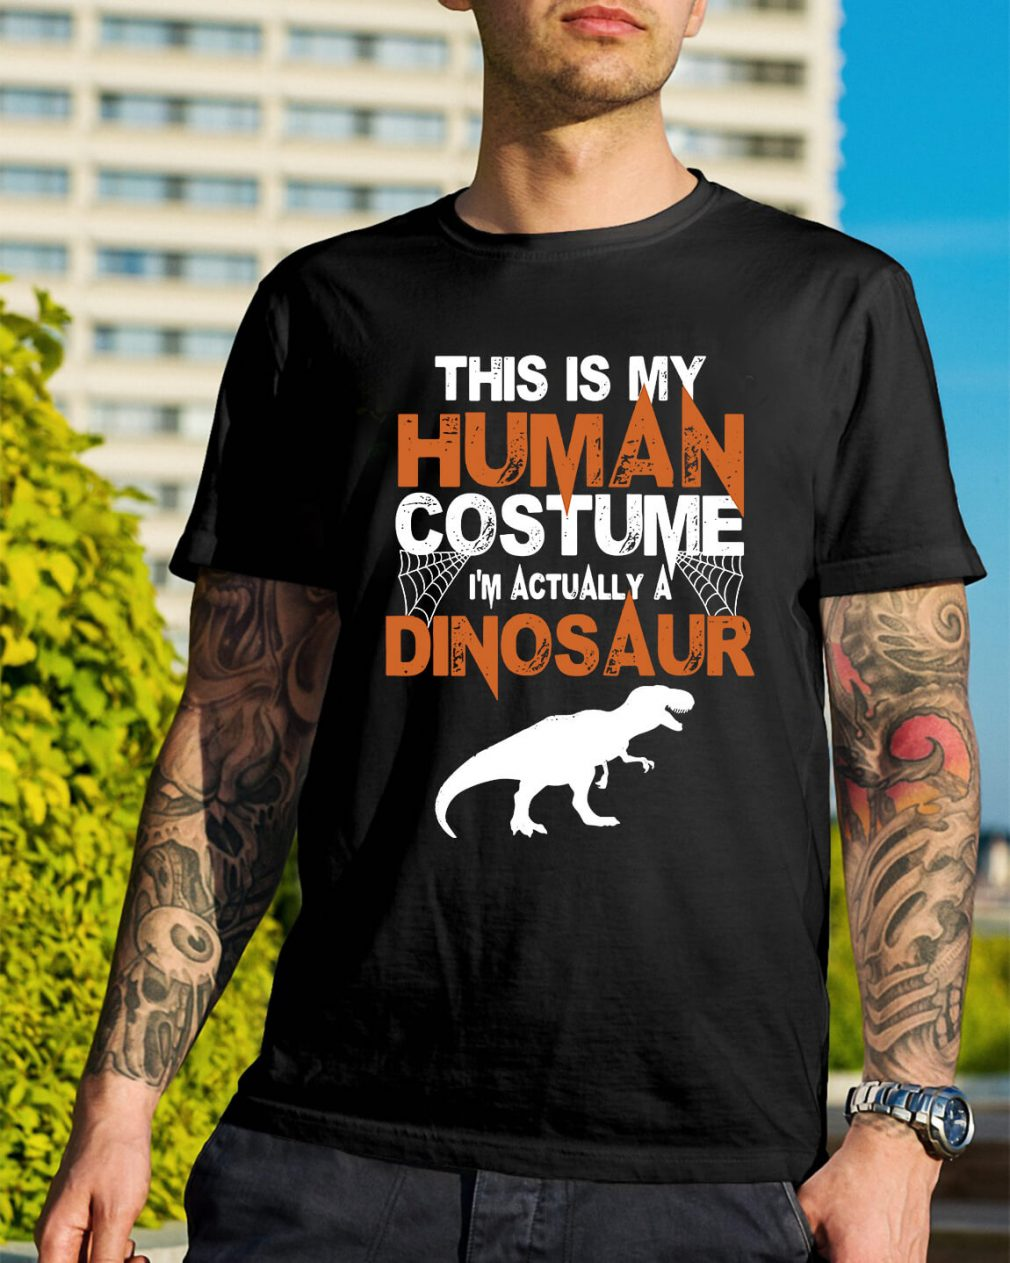 This is my house human costume I'm actually a Dinosaur shirt